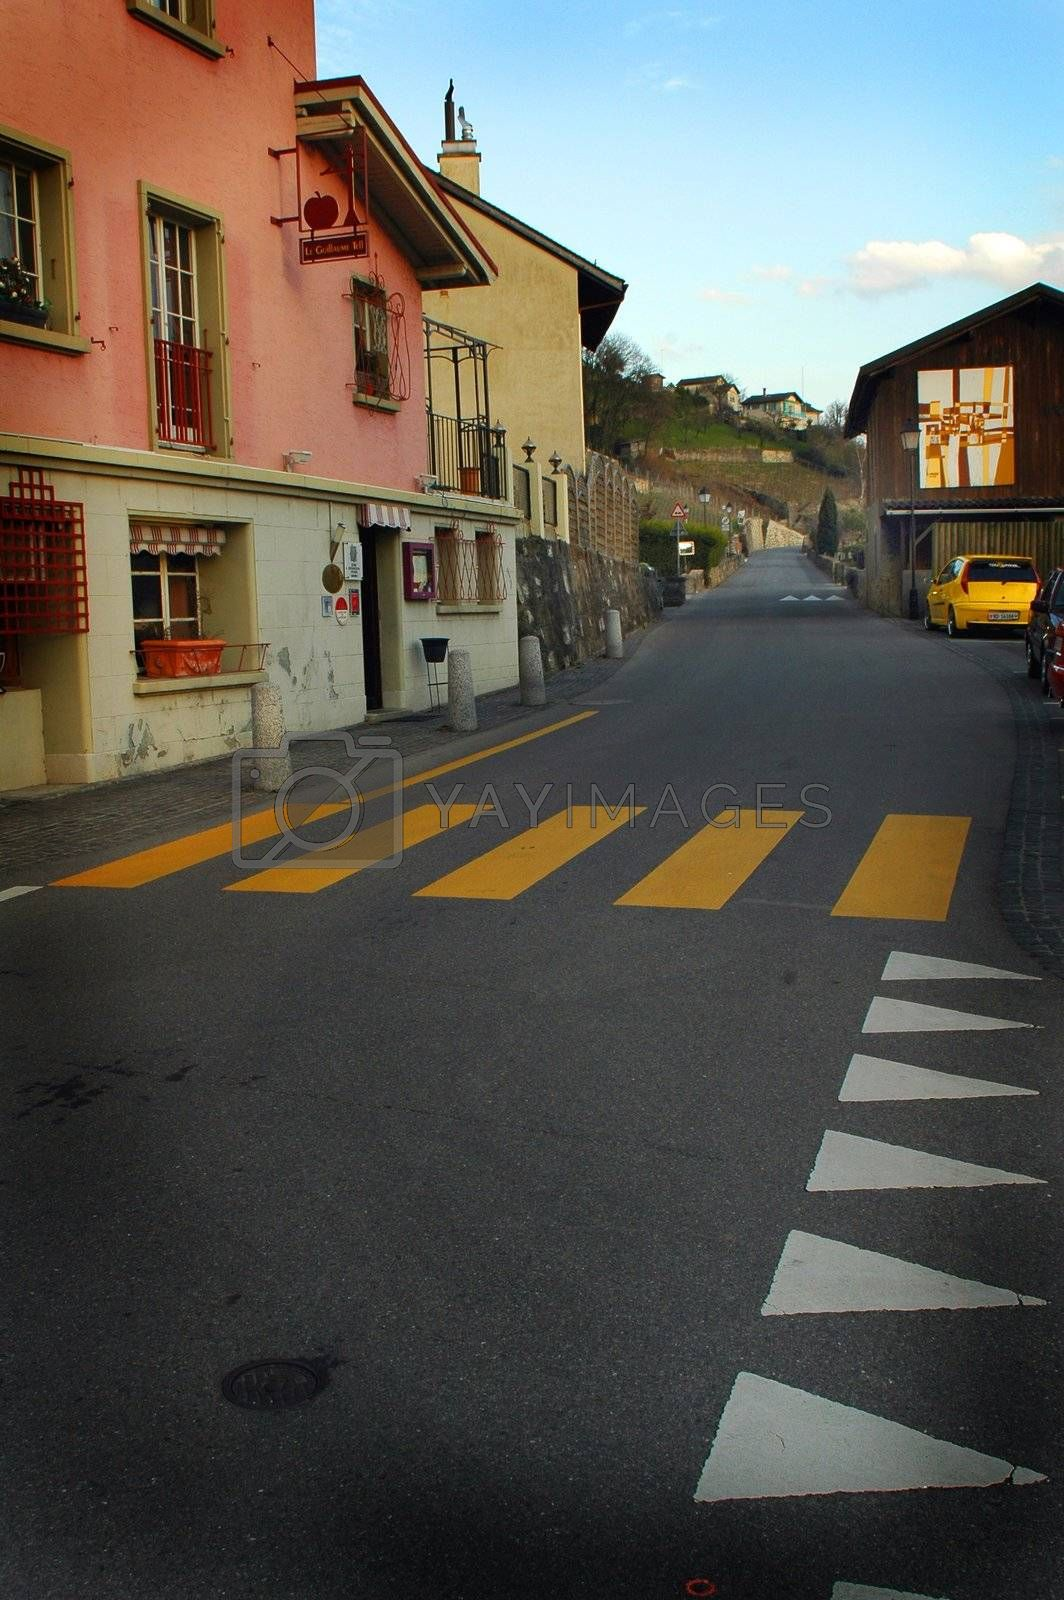 Vertical image of street crosswalks in rectangular (yellow) and triangle (white) shapes with Pink building and yellow car.